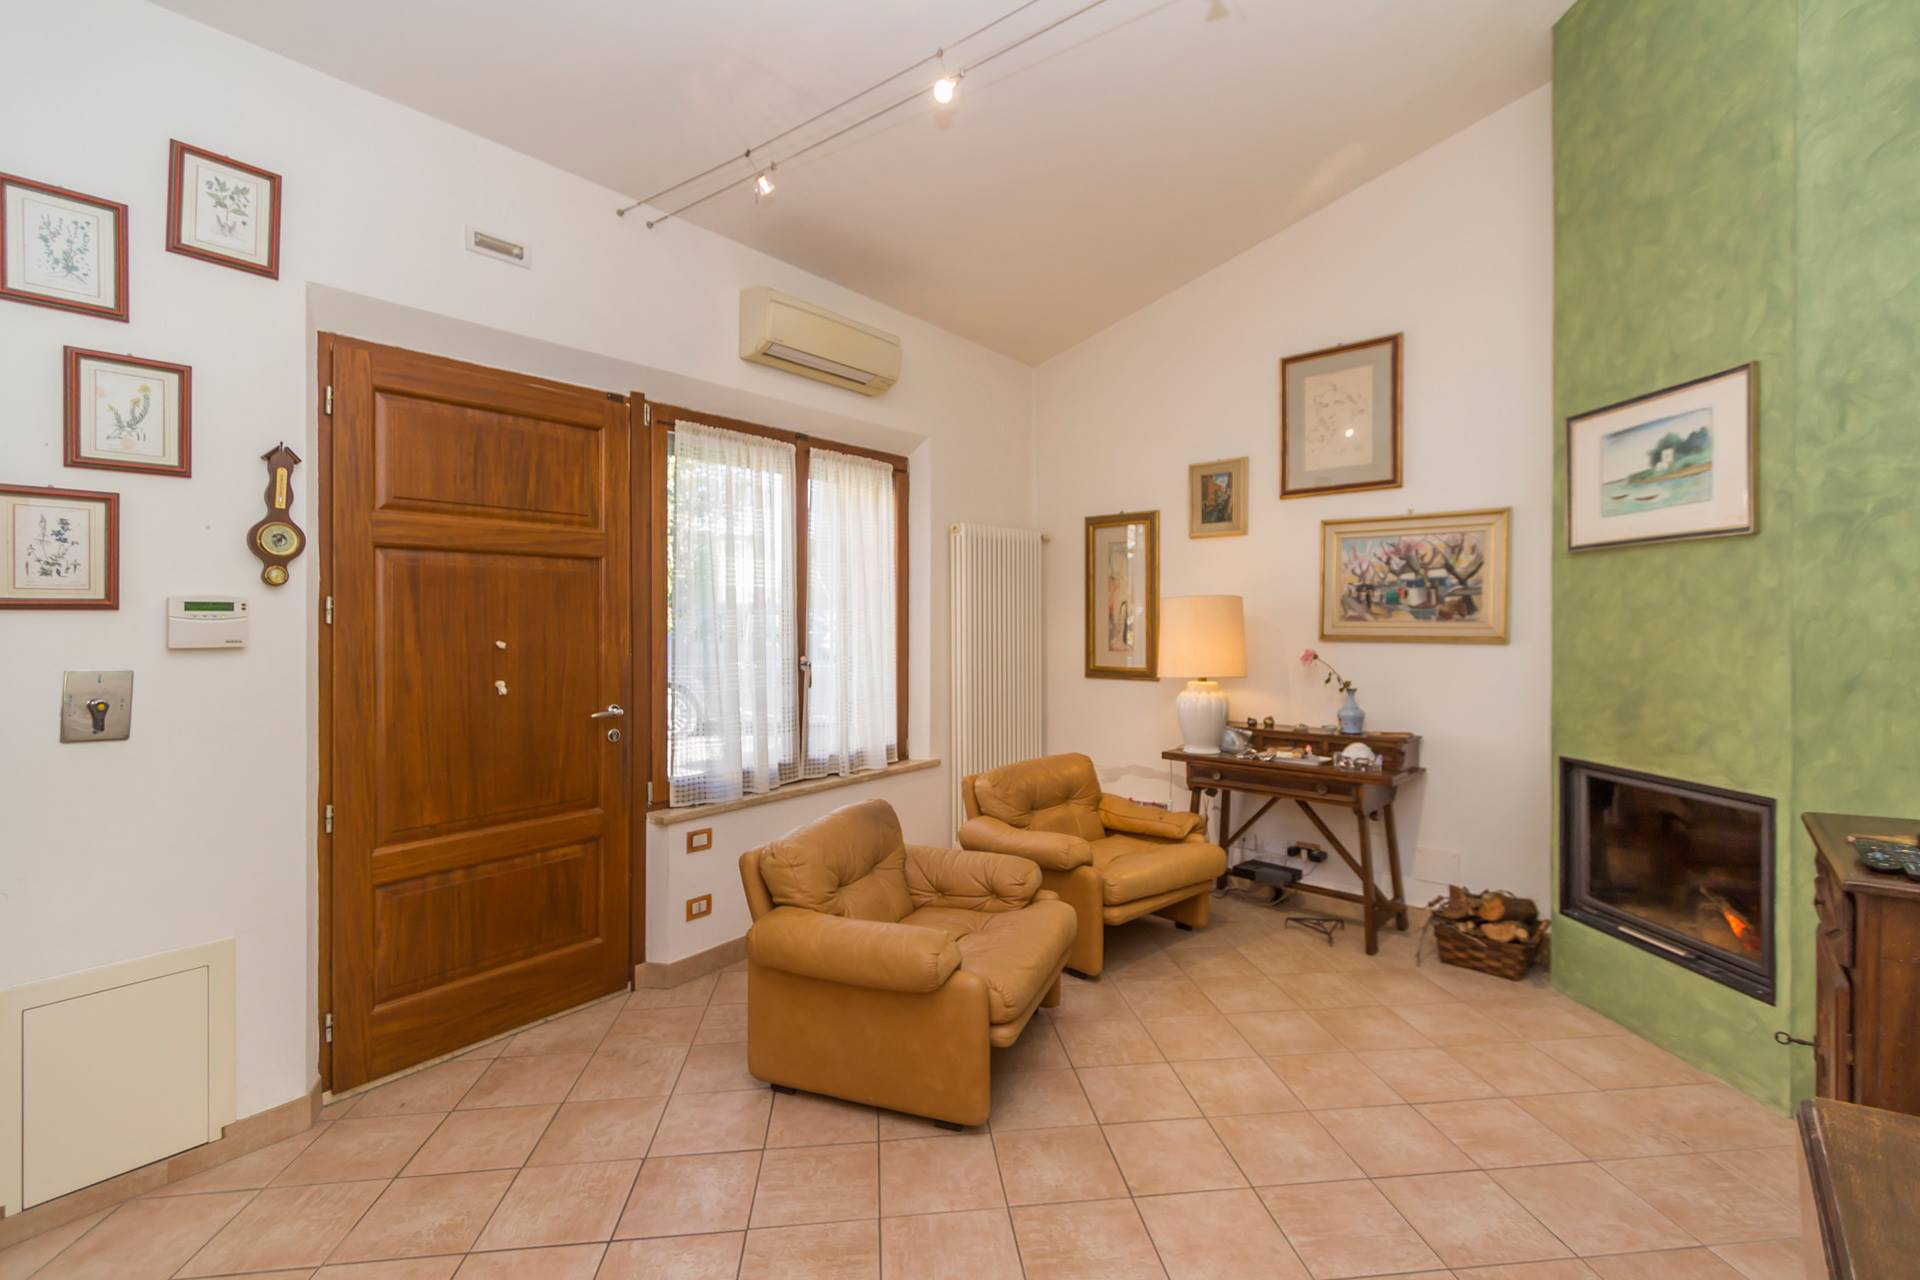 5 km from the centre of Siena, there's an independent house for sale with private gate, a courtyard with parking space and a small garden. Inside it consists of a cozy living-dining room with